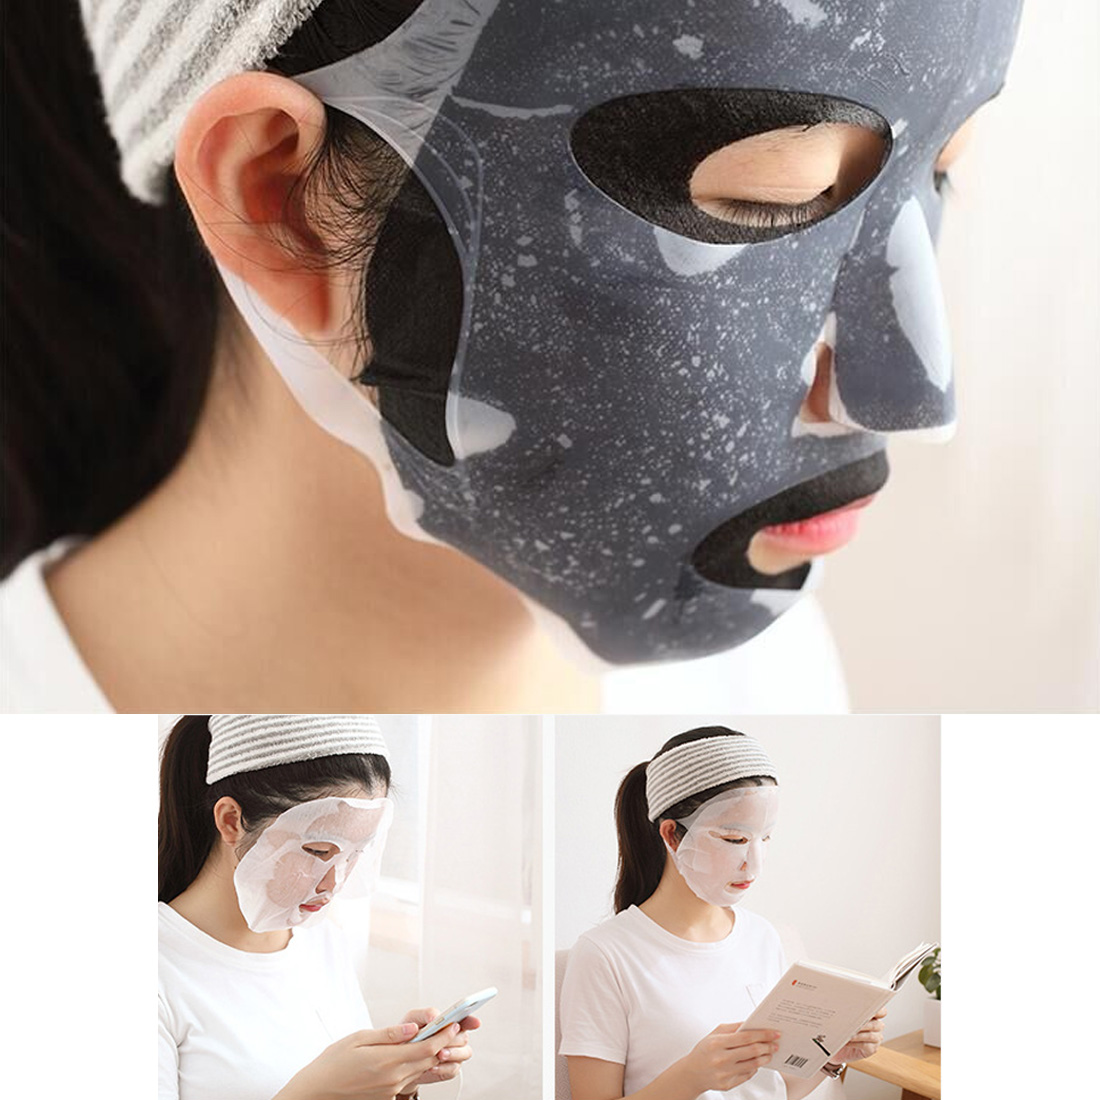 Hot Sale 1 PC Silicone Face Mask Cover Prevent Mask Evaporation Speed Up The Absorption Moisturizing Facial Mask Cover